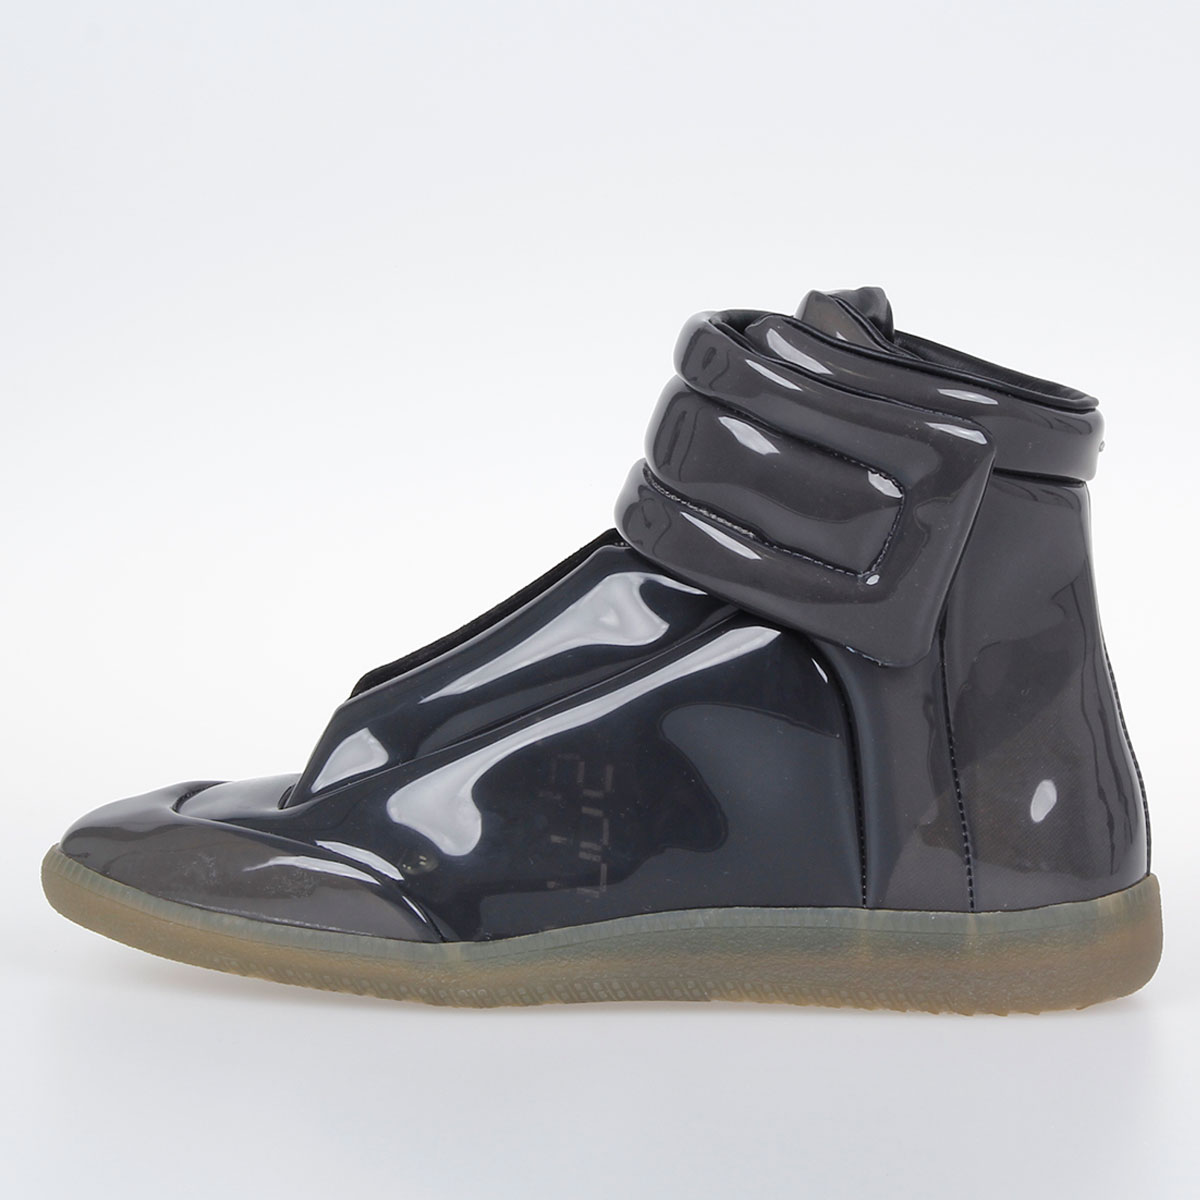 Margiela Martin En Glamood Mm22 Cuir Enduit Baskets Homme High uJ35TlFK1c